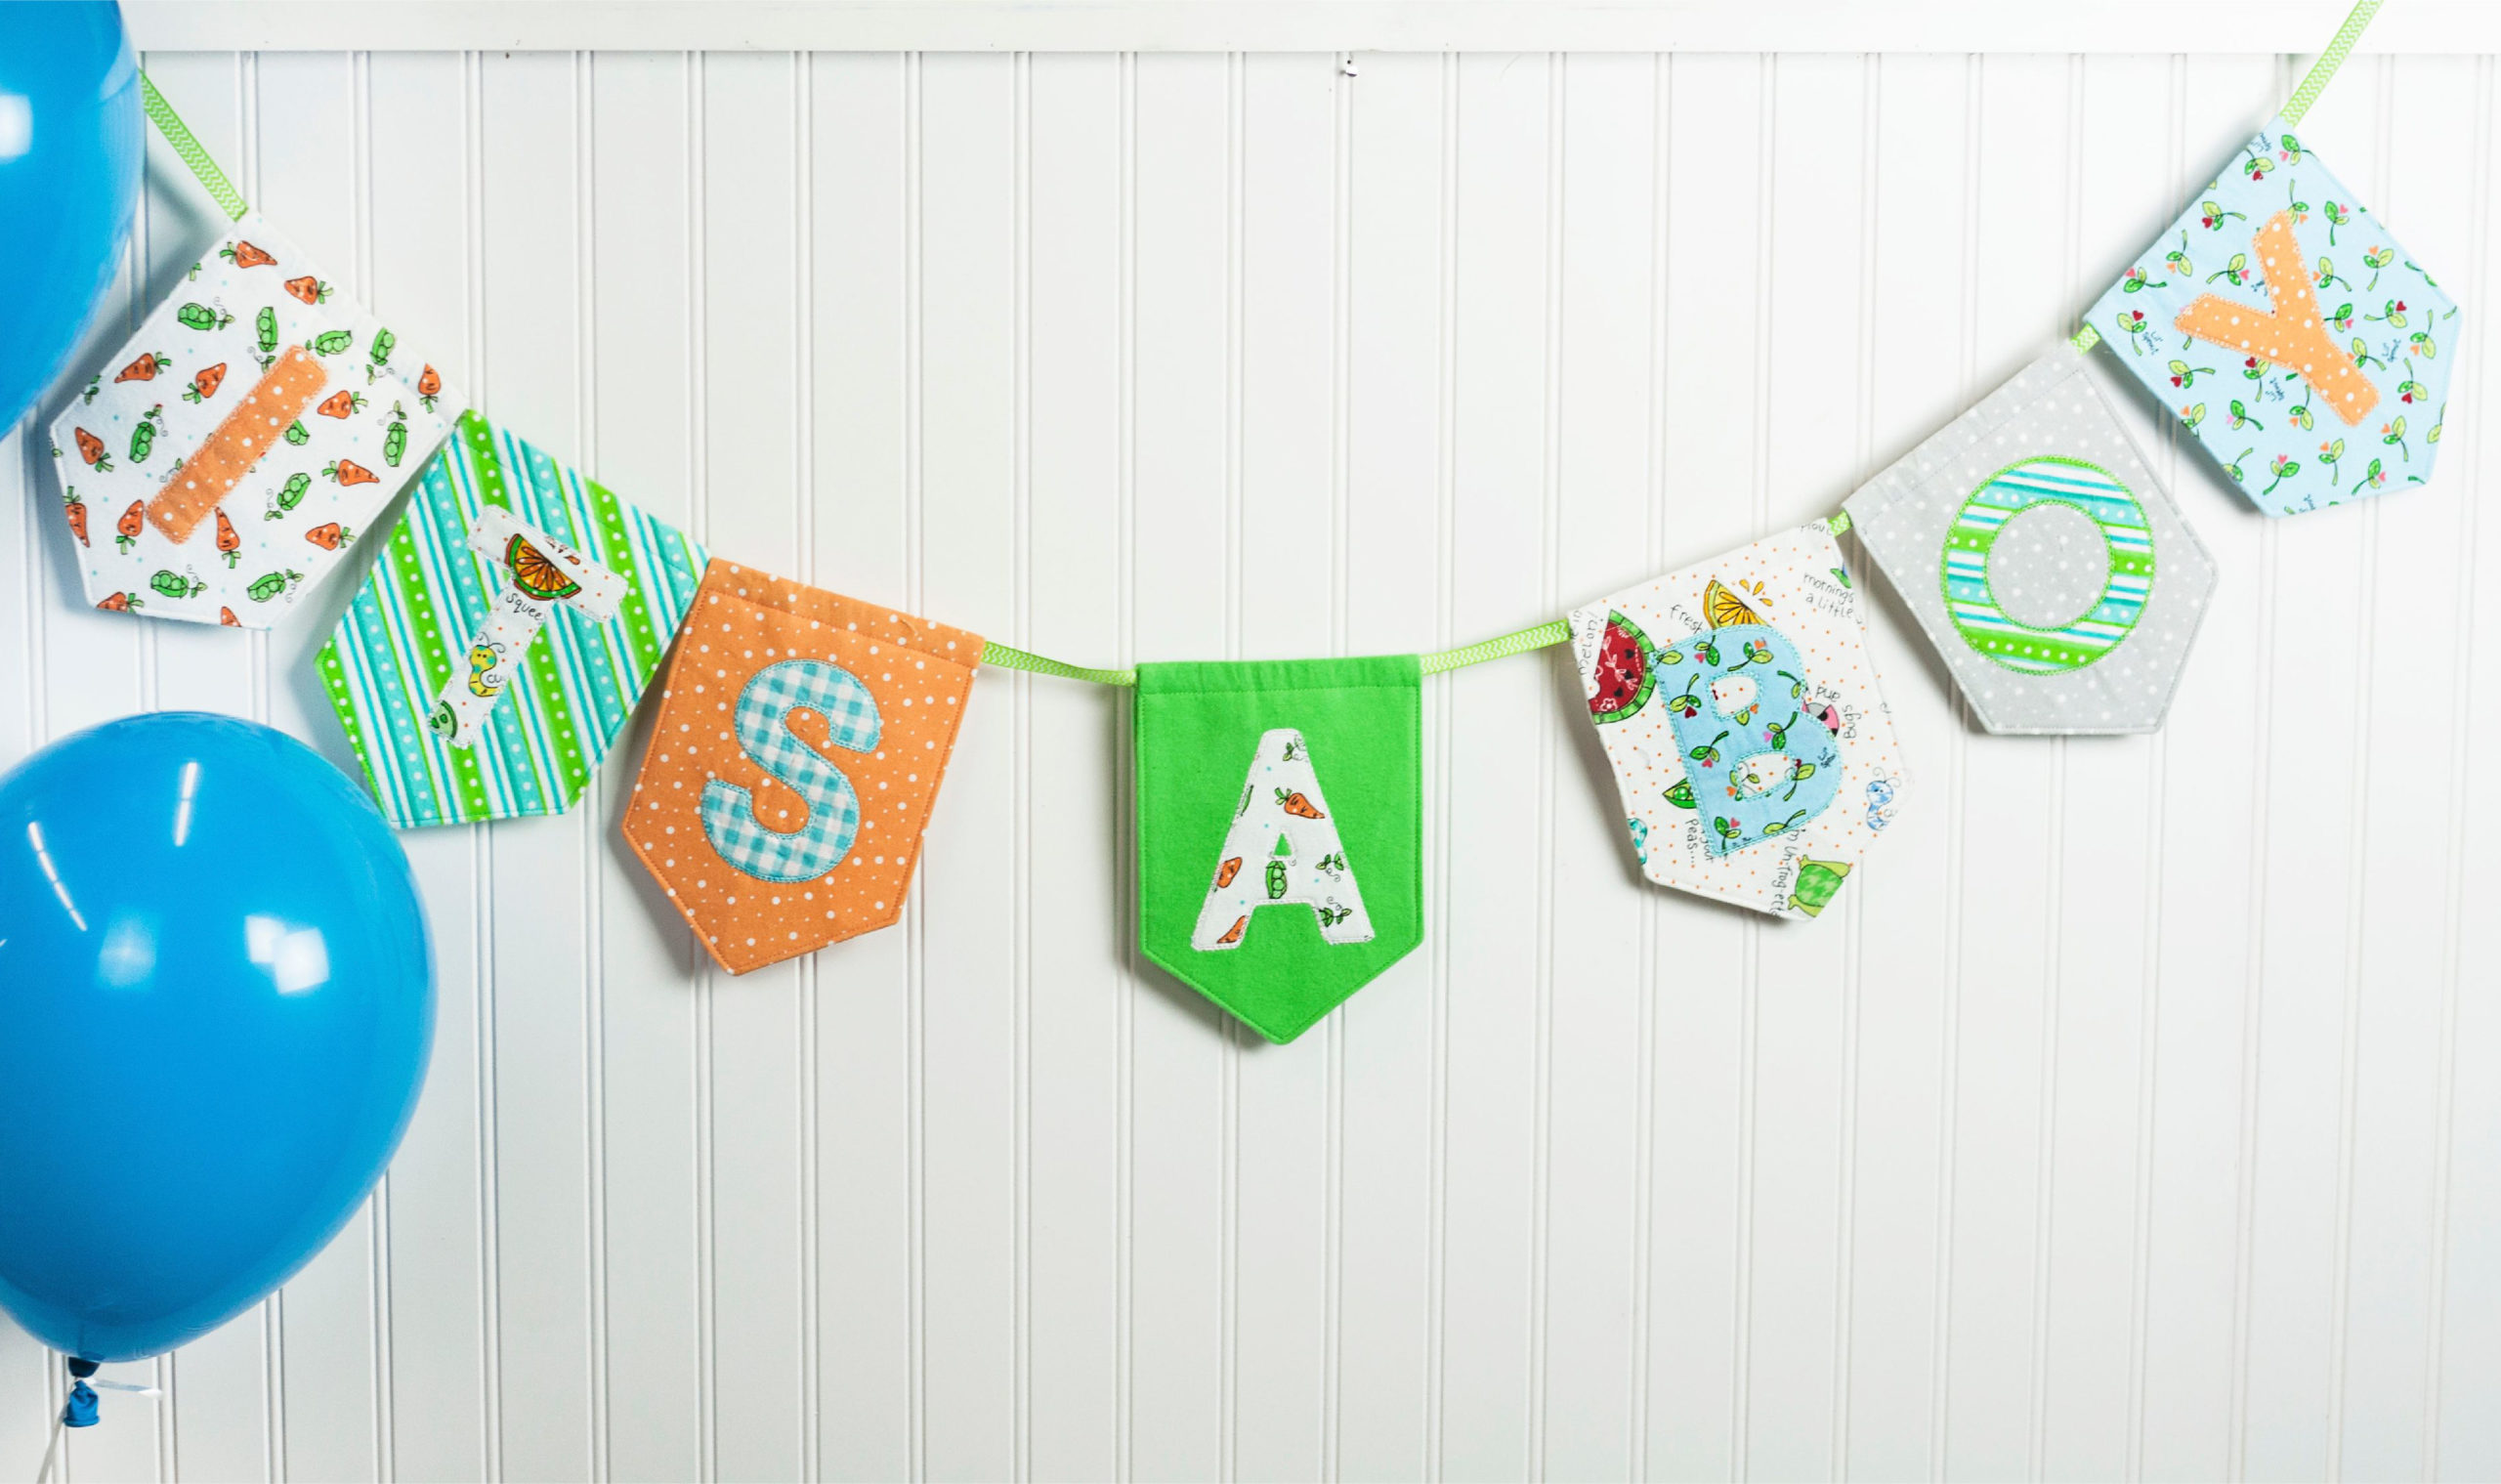 Baby nursery decor with pennants and banners for sewing and machine embroidery